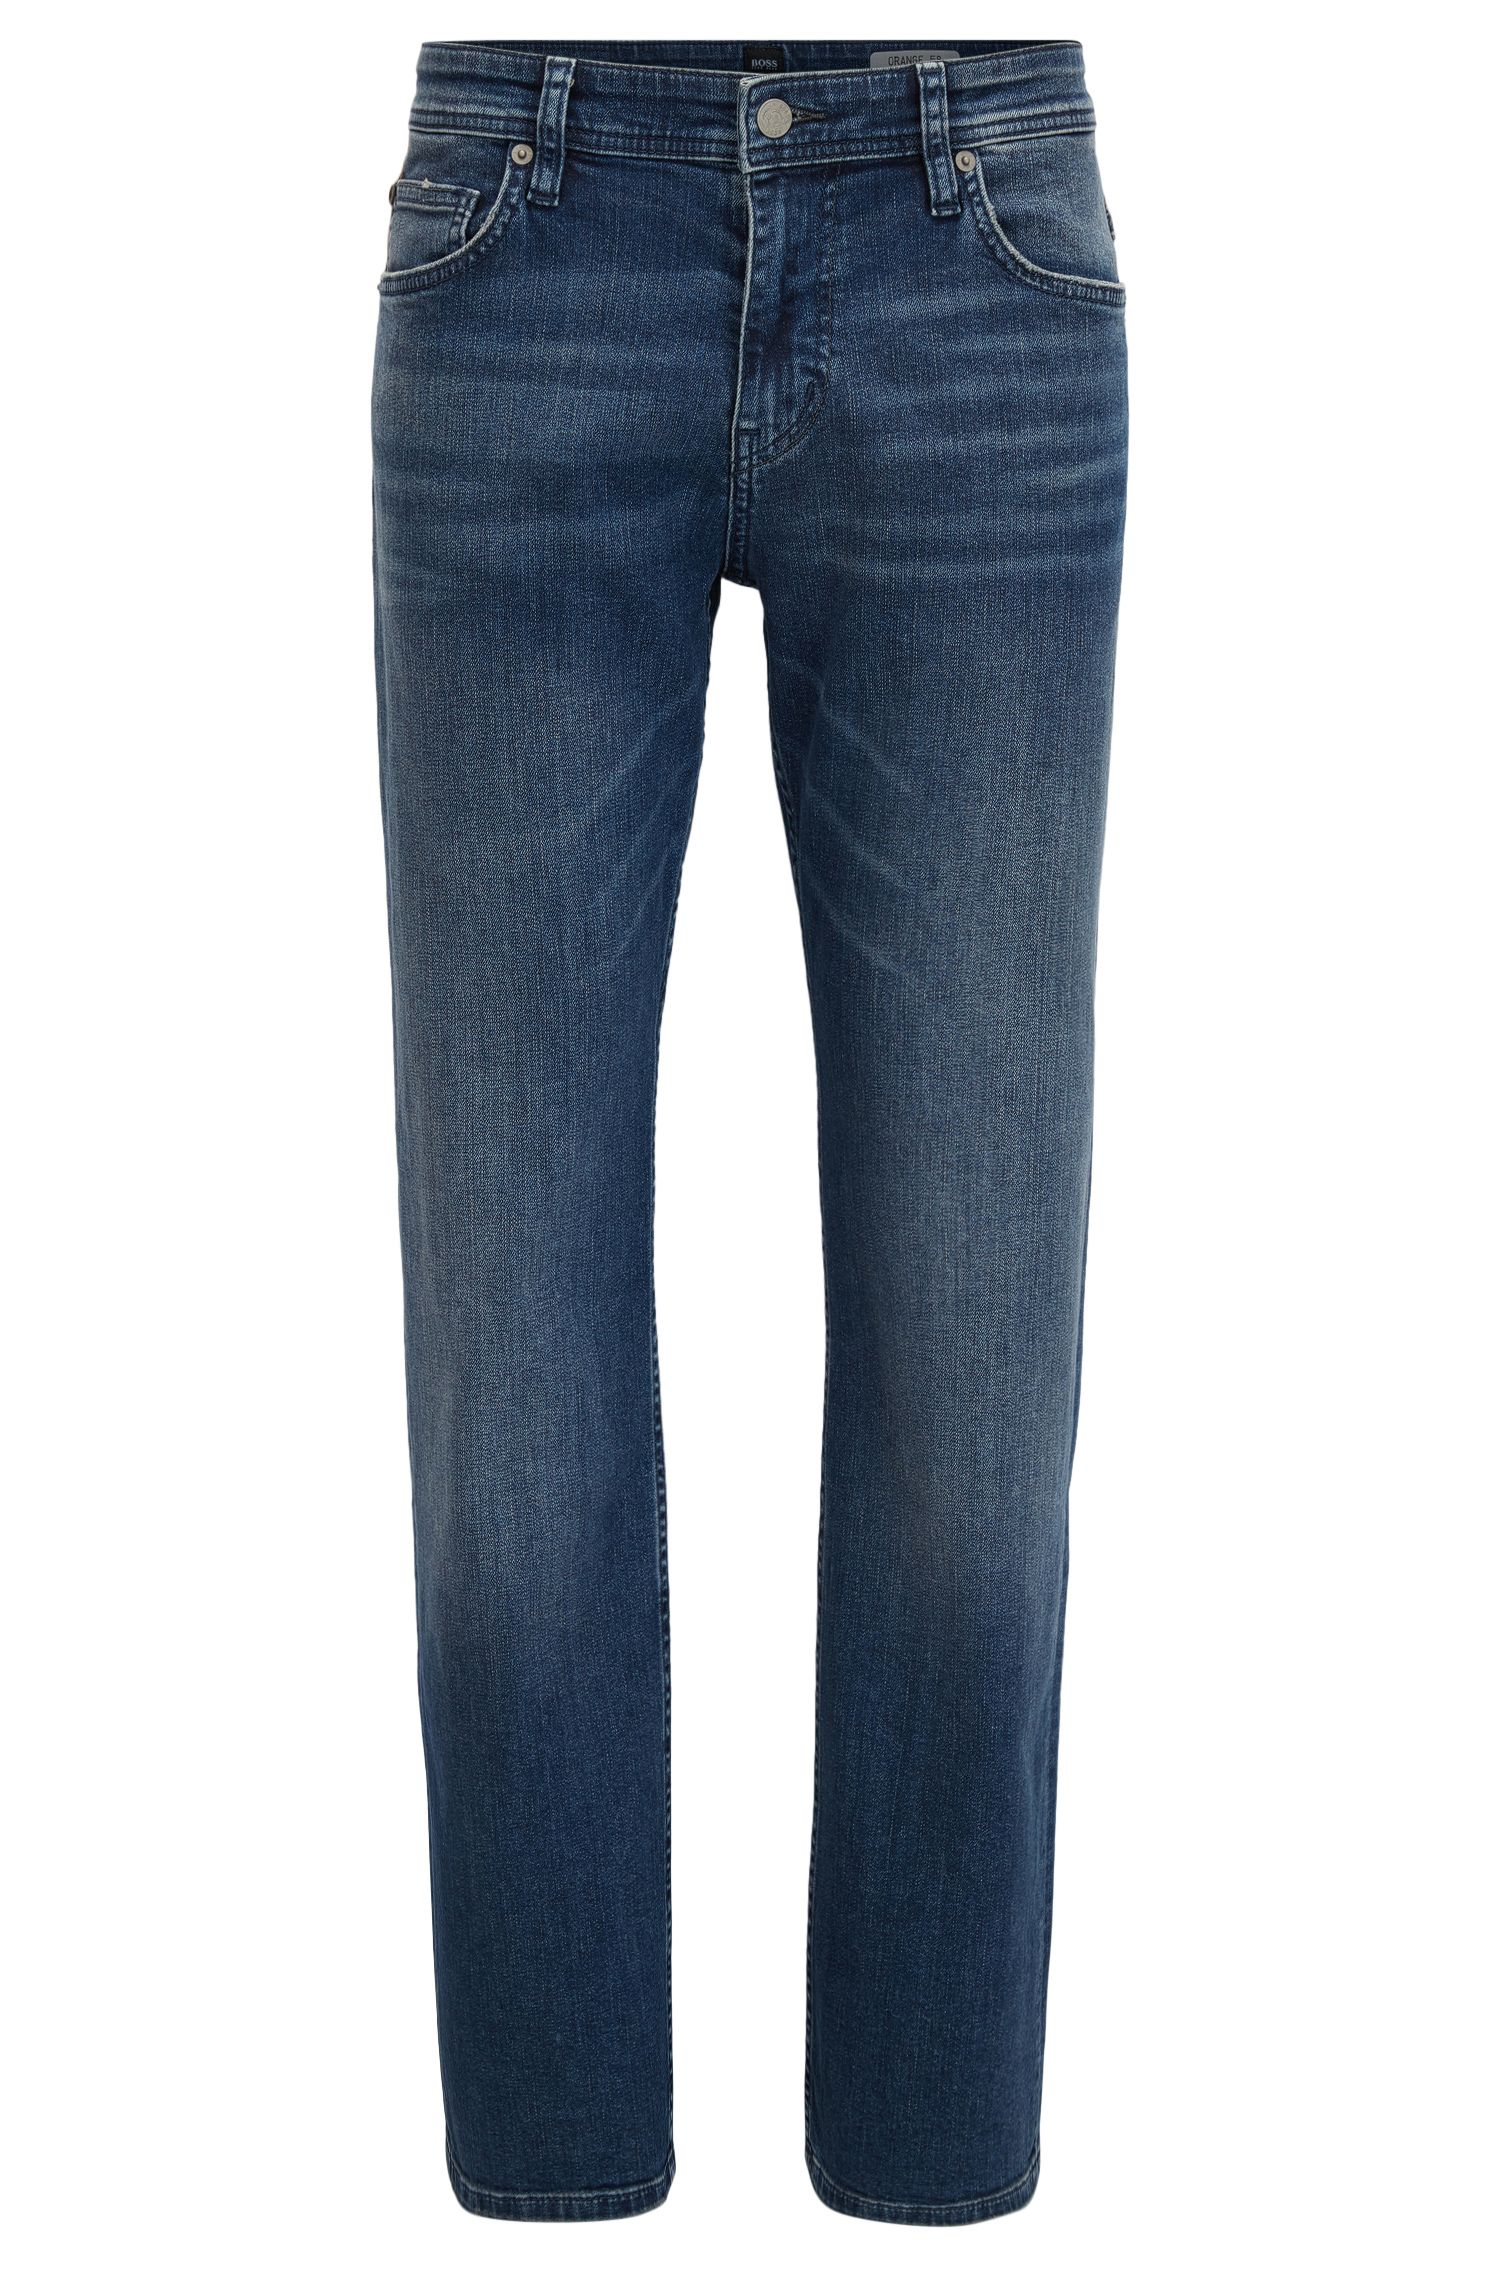 Relaxed-fit jeans in comfort-stretch denim